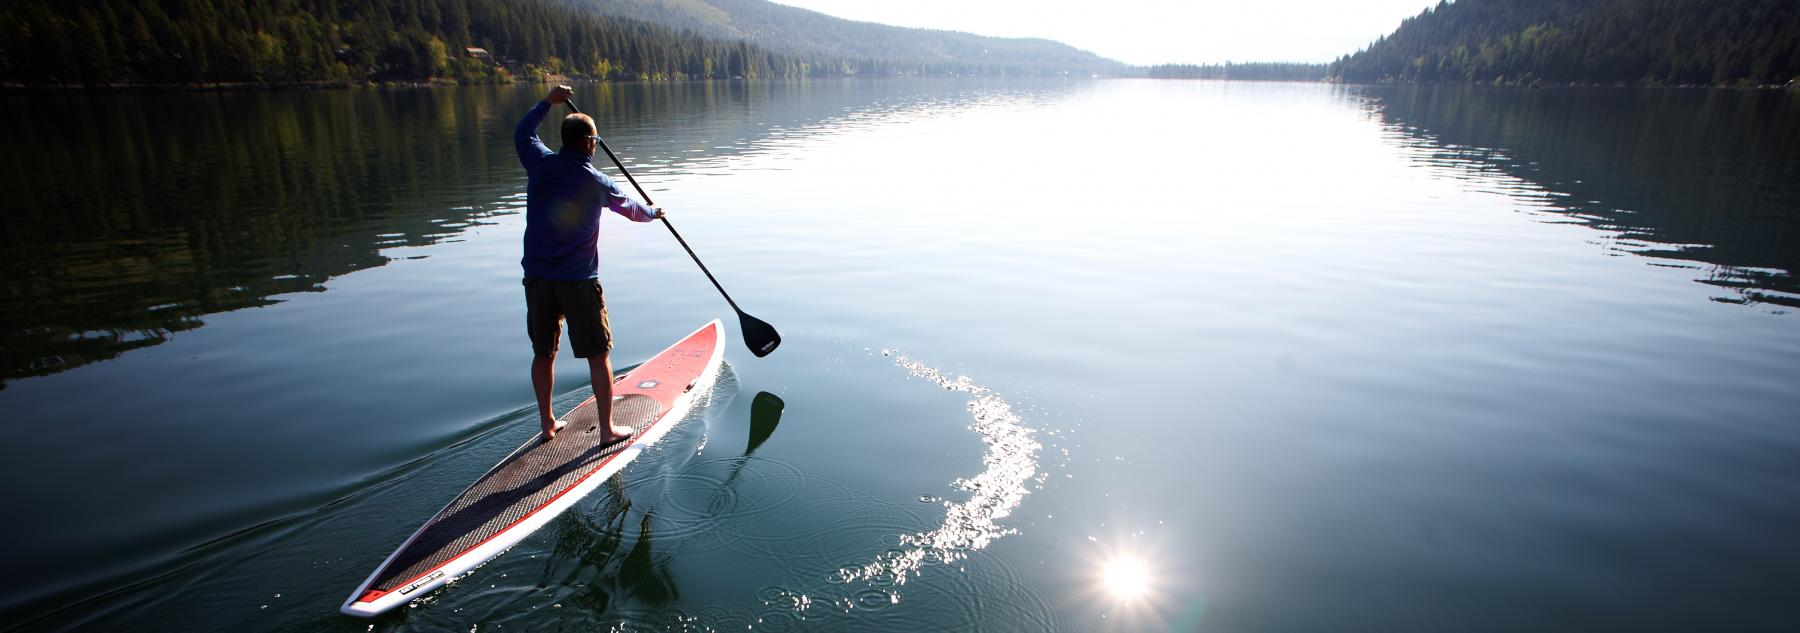 paddleboard, Tahoe, Donner, summer